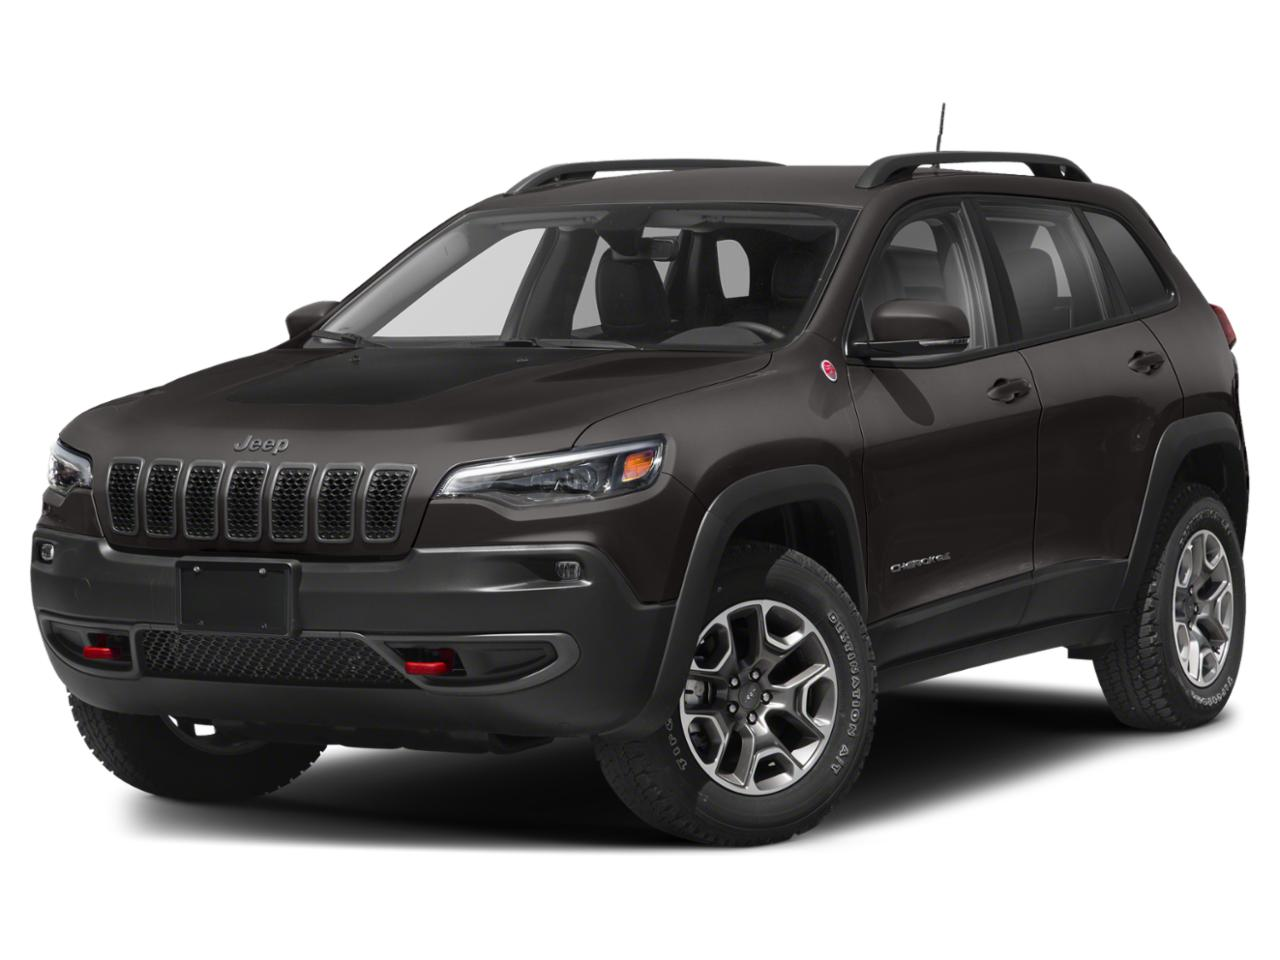 Used 2020 Jeep Cherokee Trailhawk with VIN 1C4PJMBXXLD505778 for sale in Two Harbors, Minnesota